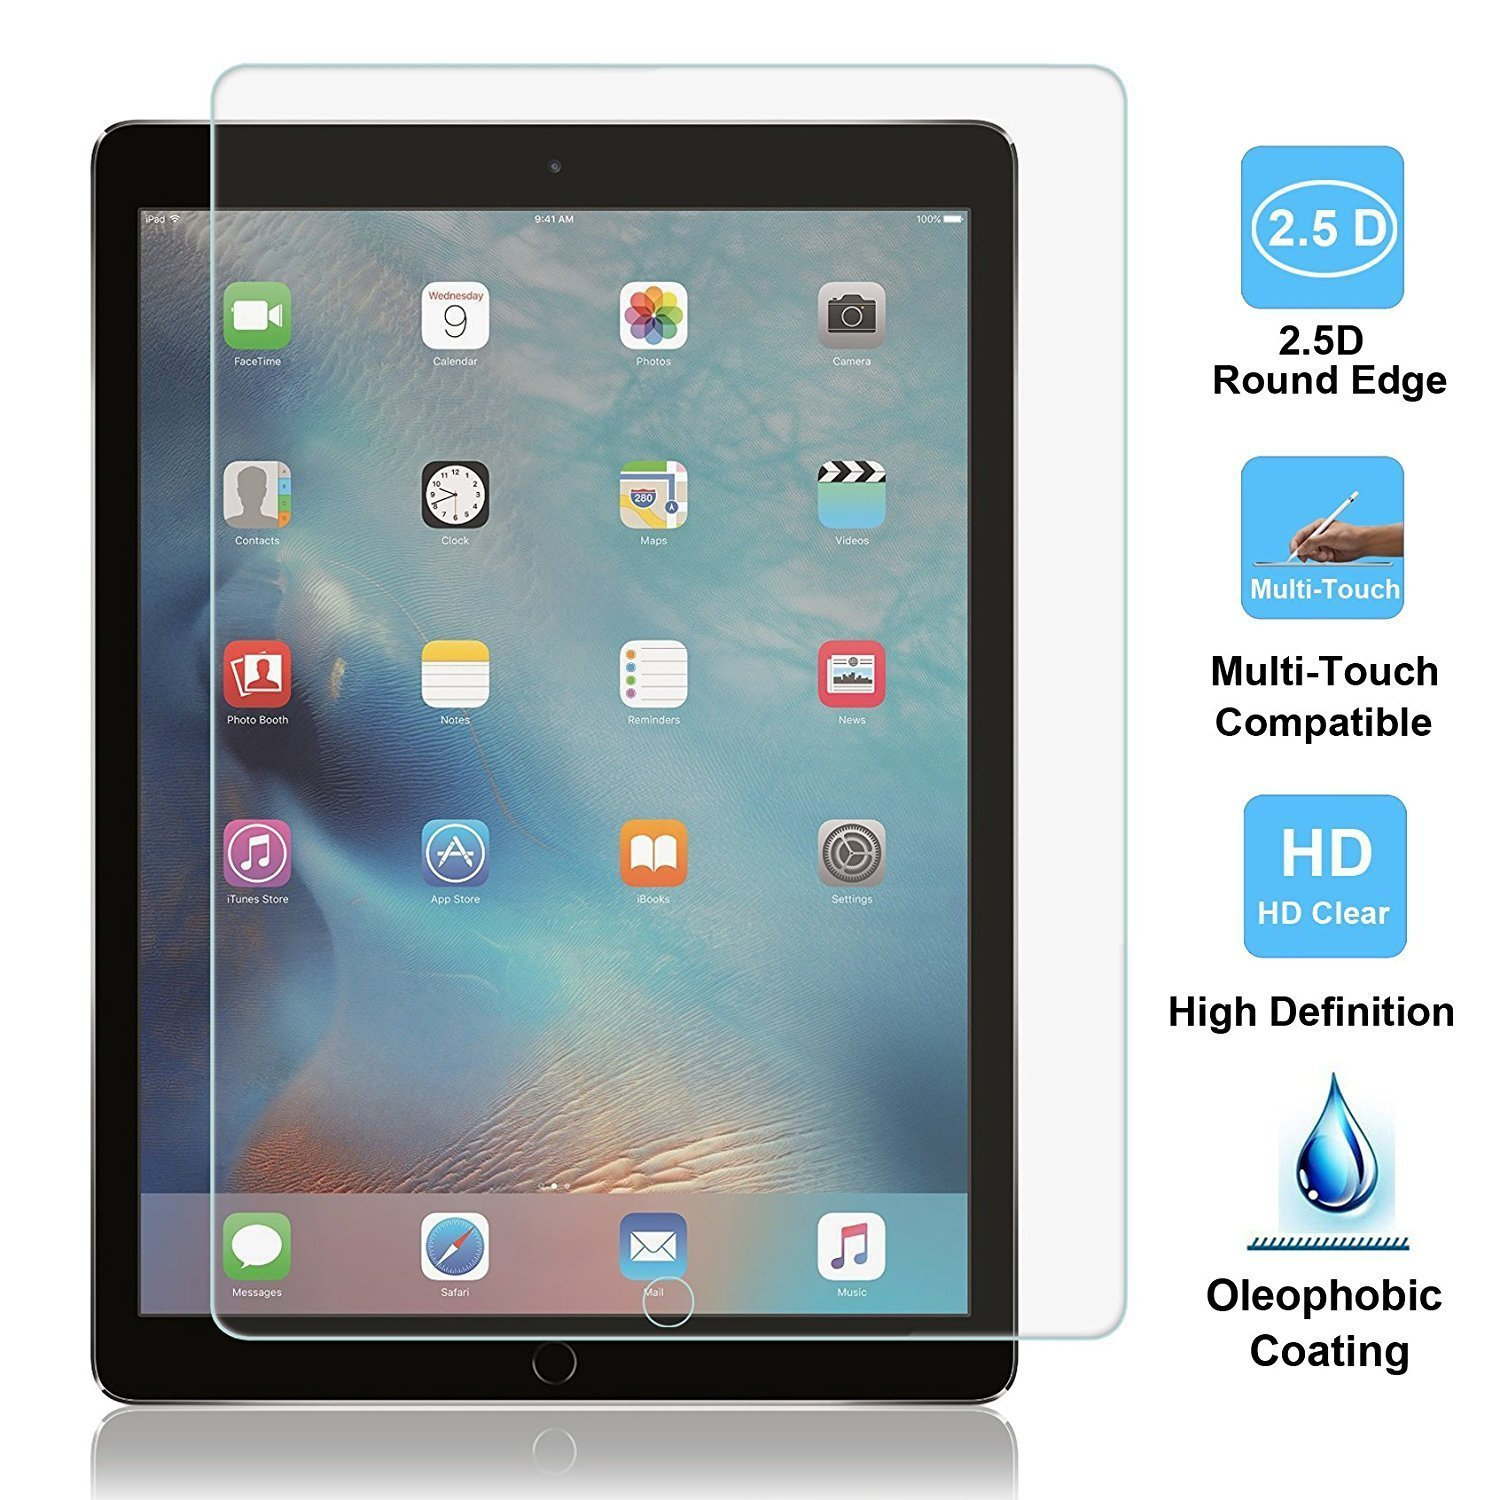 [2 PACK] iPad Pro 12.9 Screen Protector, SPARIN Multi-Touch Compatible / Bubble-Free / Anti-Scratch Tempered Glass Screen Protector For 12.9-Inch iPad Pro (2015, 2017 Release) by SPARIN (Image #4)